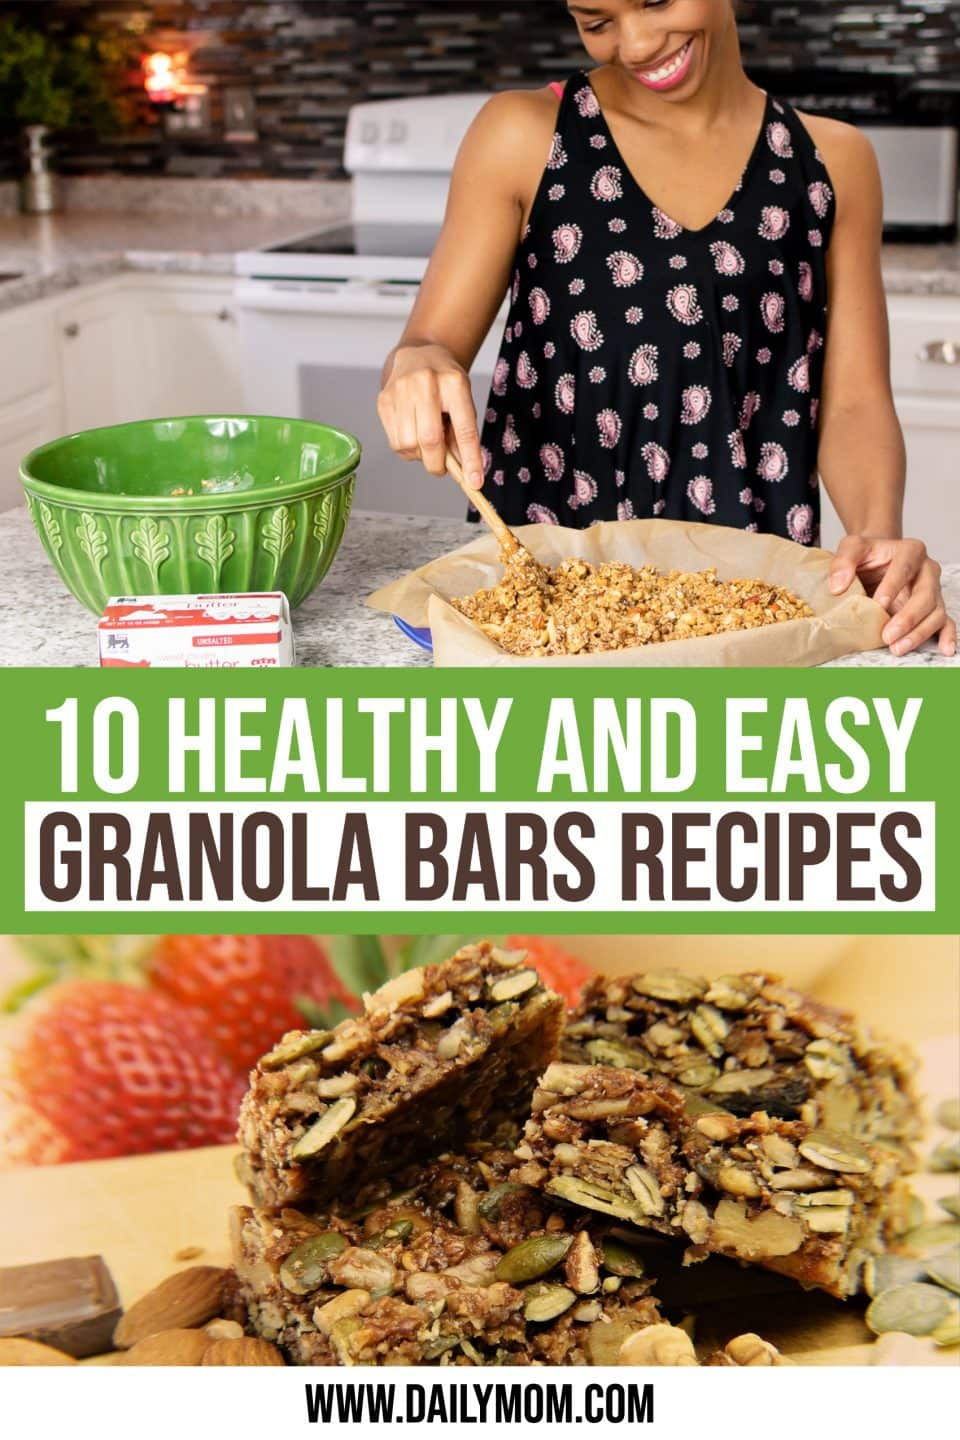 daily-mom-parent-portal-Healthy Granola Bars Recipes For Moms On The Go-pin